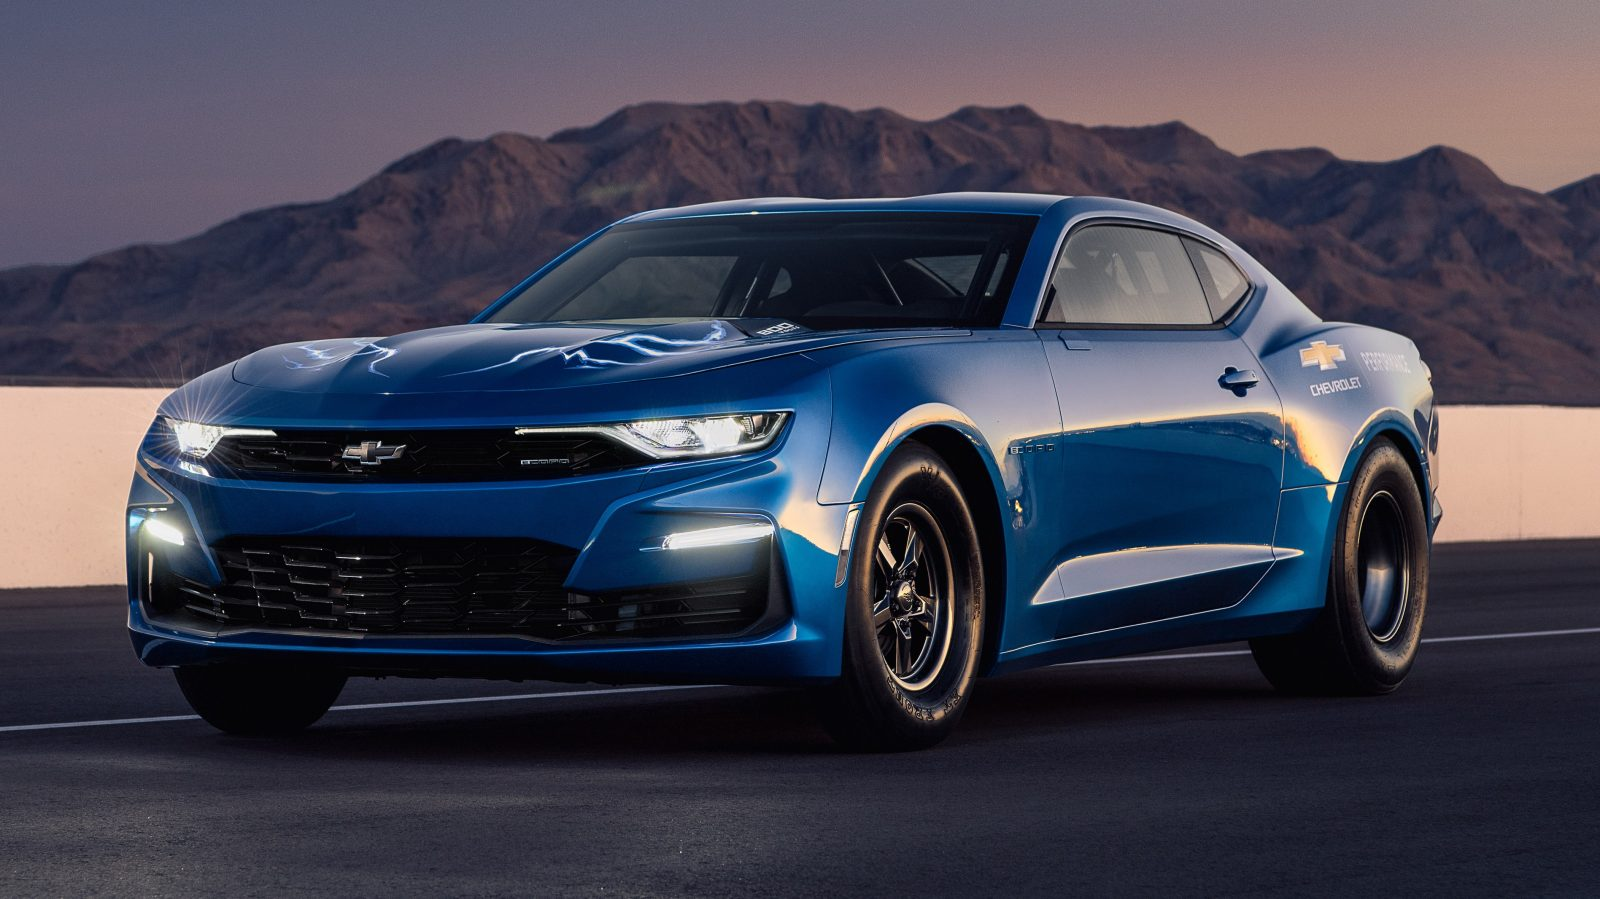 Chevy shows off a 800V Electric 'eCOPO' Camaro conversion ...